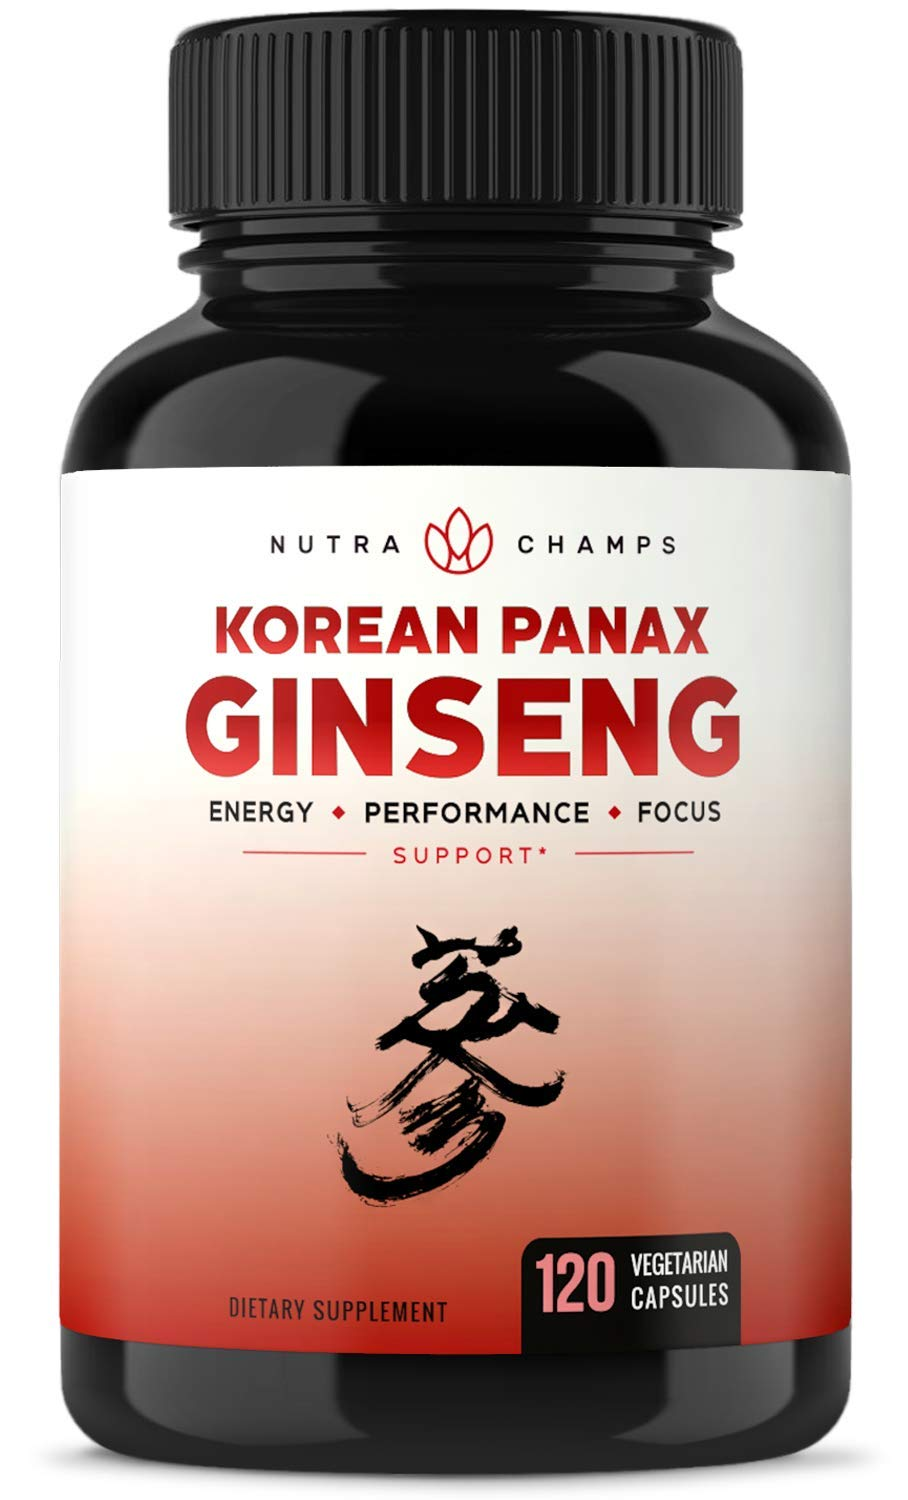 NutraChamps Korean Red Panax Ginseng 1000mg - 120 Vegan Capsules Extra Strength Root Extract Powder Supplement w/High Ginsenosides for Energy, Performance & Focus Pills for Men & Women by NutraChamps